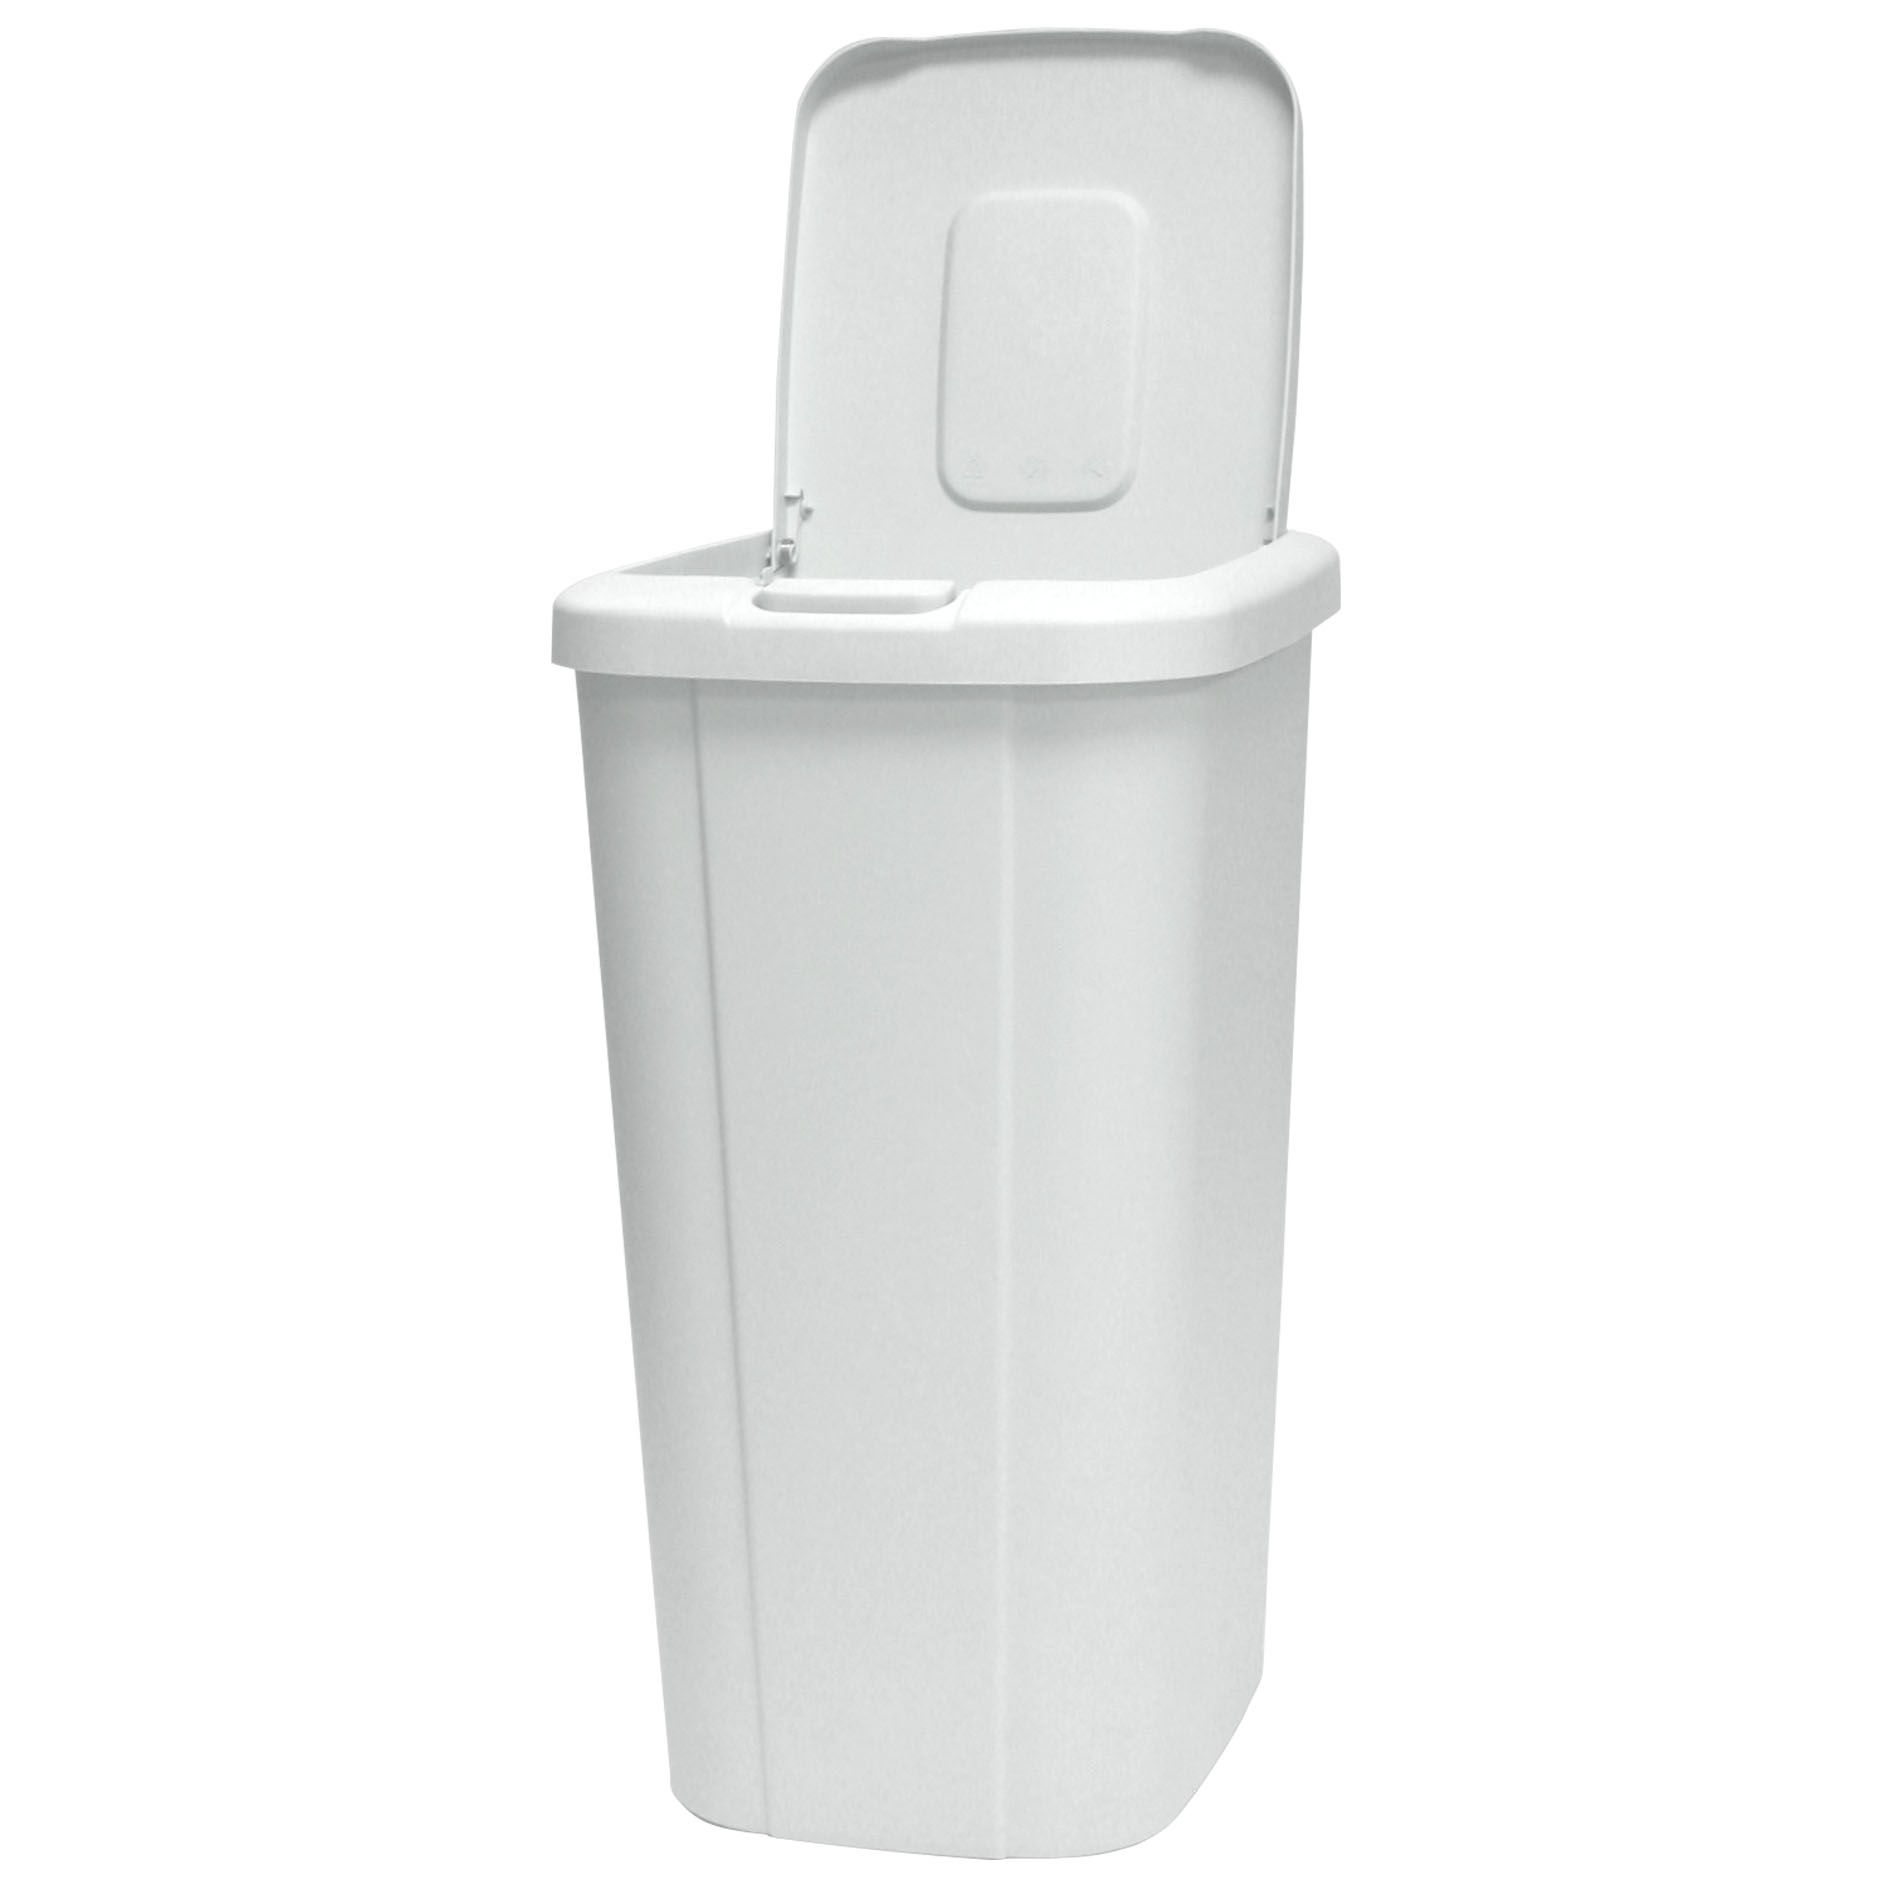 Kitchen Garbage Can With Lid Nine Stars Infrared Motion Sensor Lid Open Trash Can